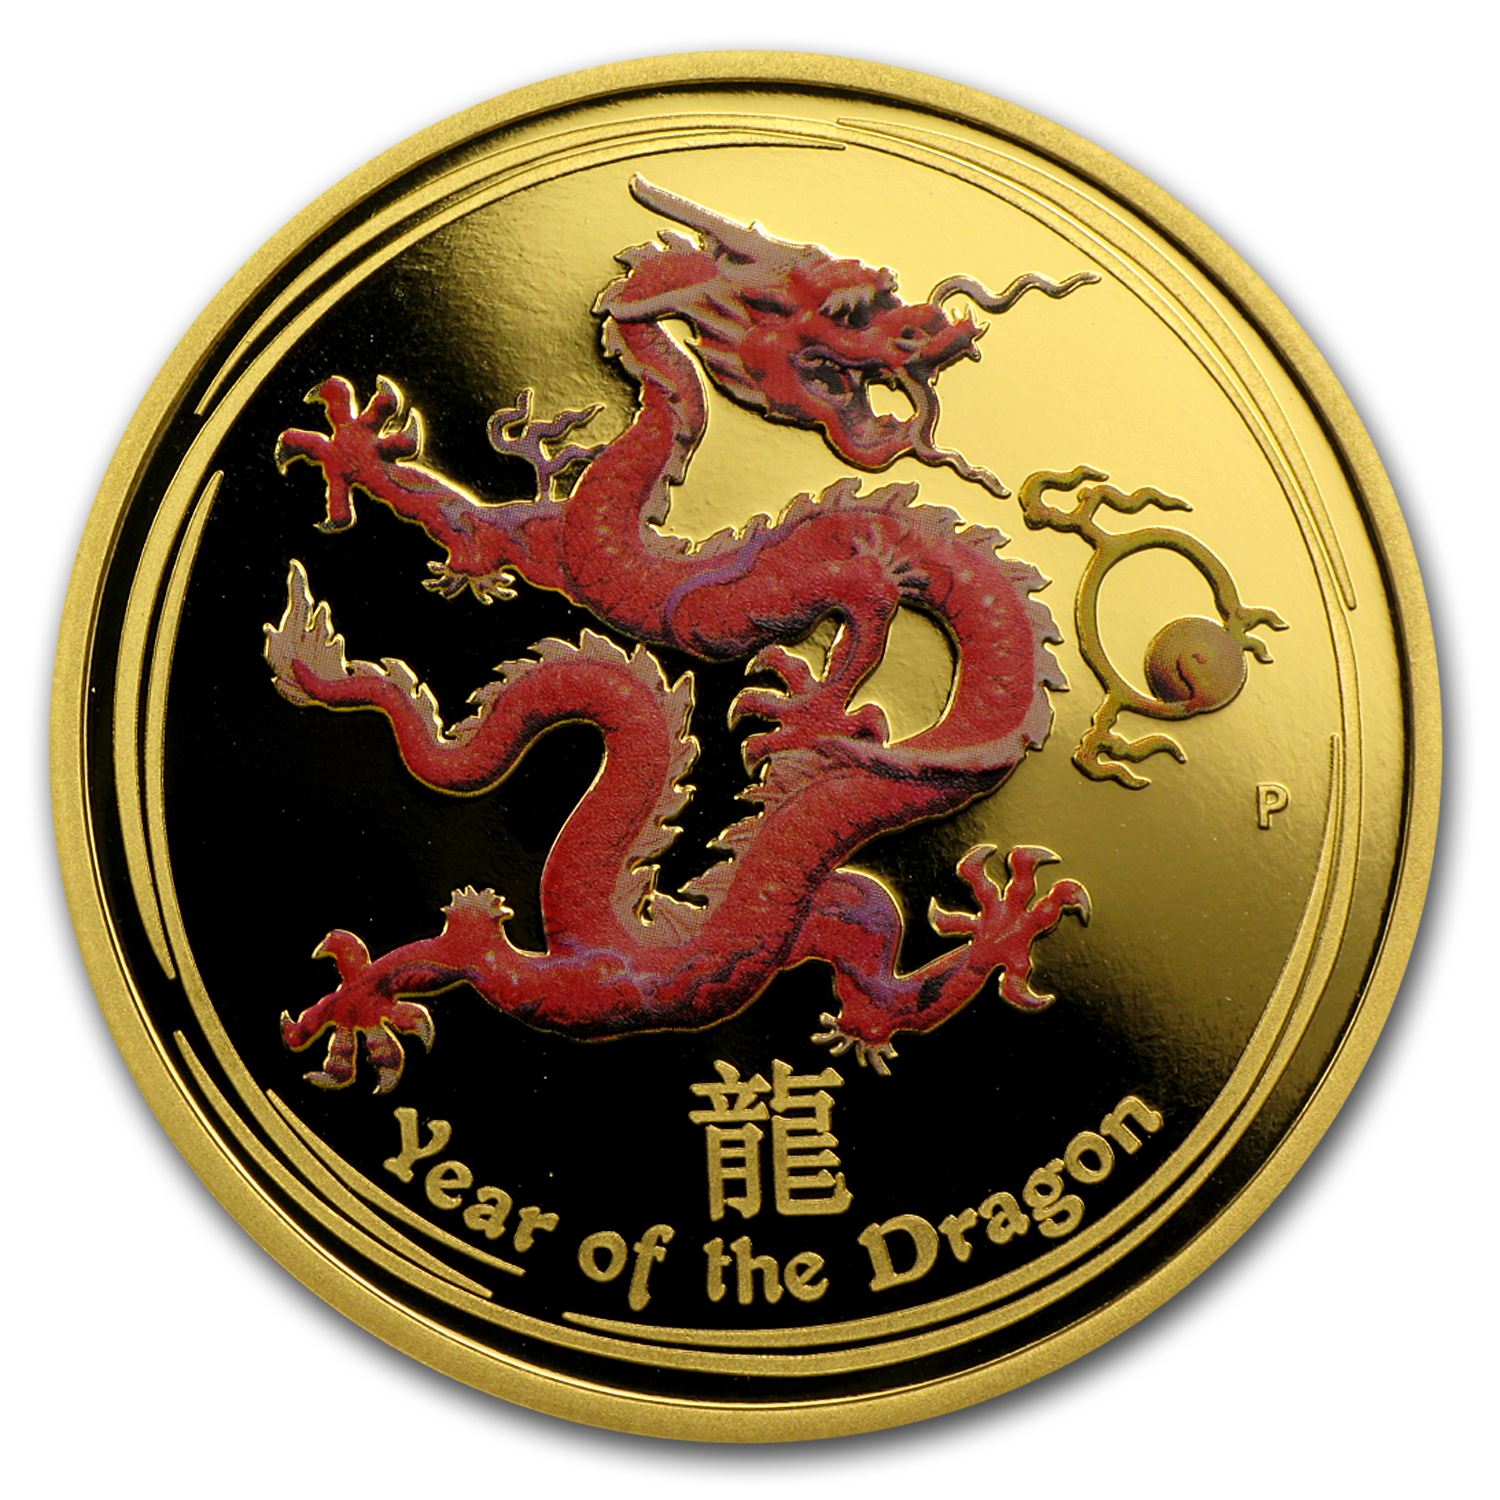 2012 Gold 1 oz Lunar Year of the Dragon Pf (Series II, Colorized)